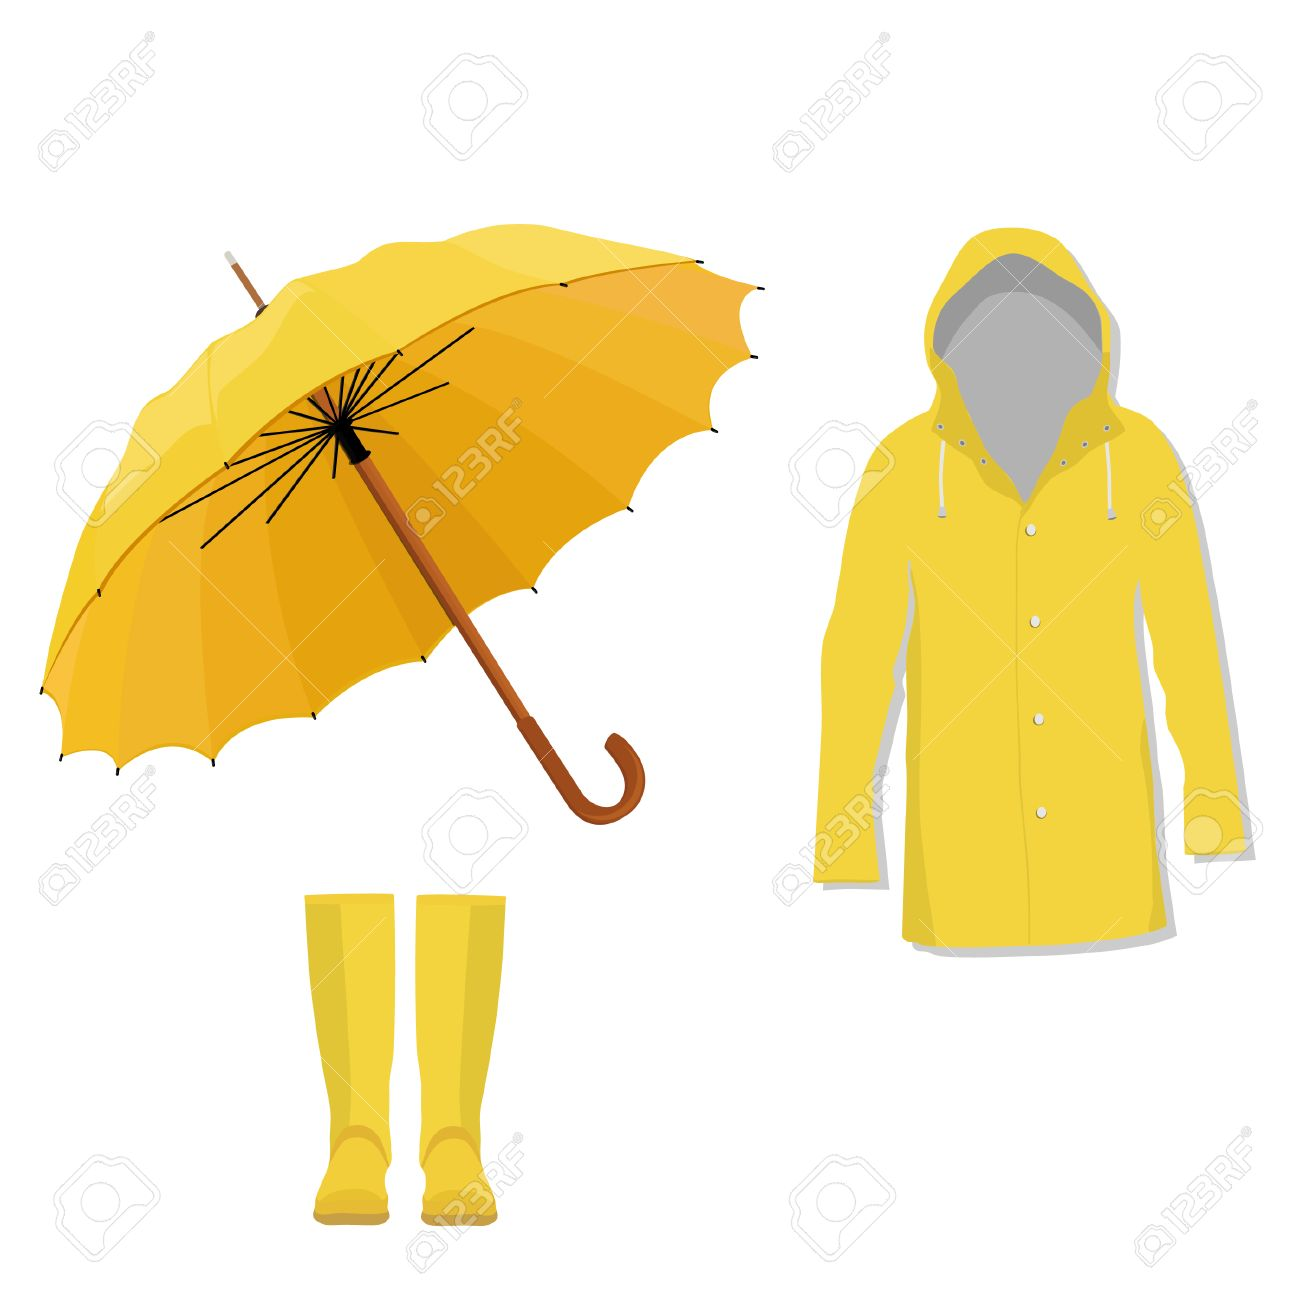 Boots fashion pic boots clip art - Yellow Raincoat Rubber Boots And Opened Umbrella Fashion Protection Stock Vector 44097519